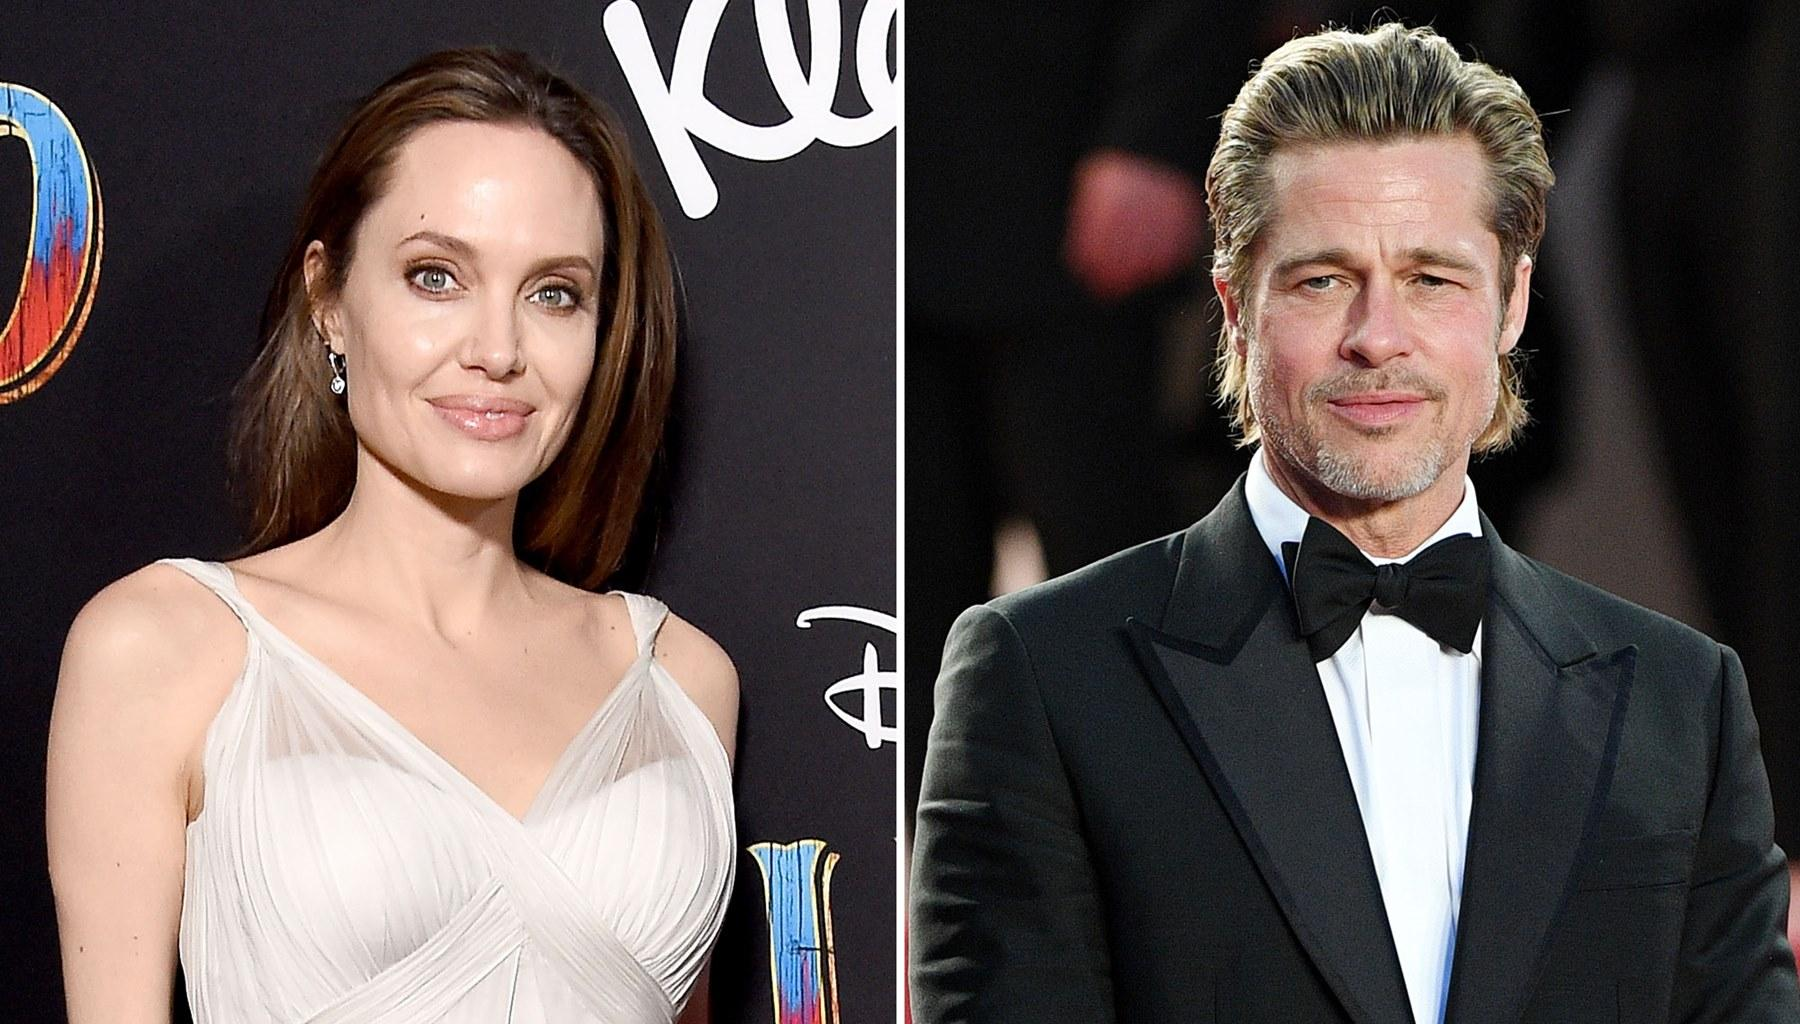 Angelina Jolie Opens Up About Hers And Brad Pitt's Struggles While In Quarantine With Six Kids